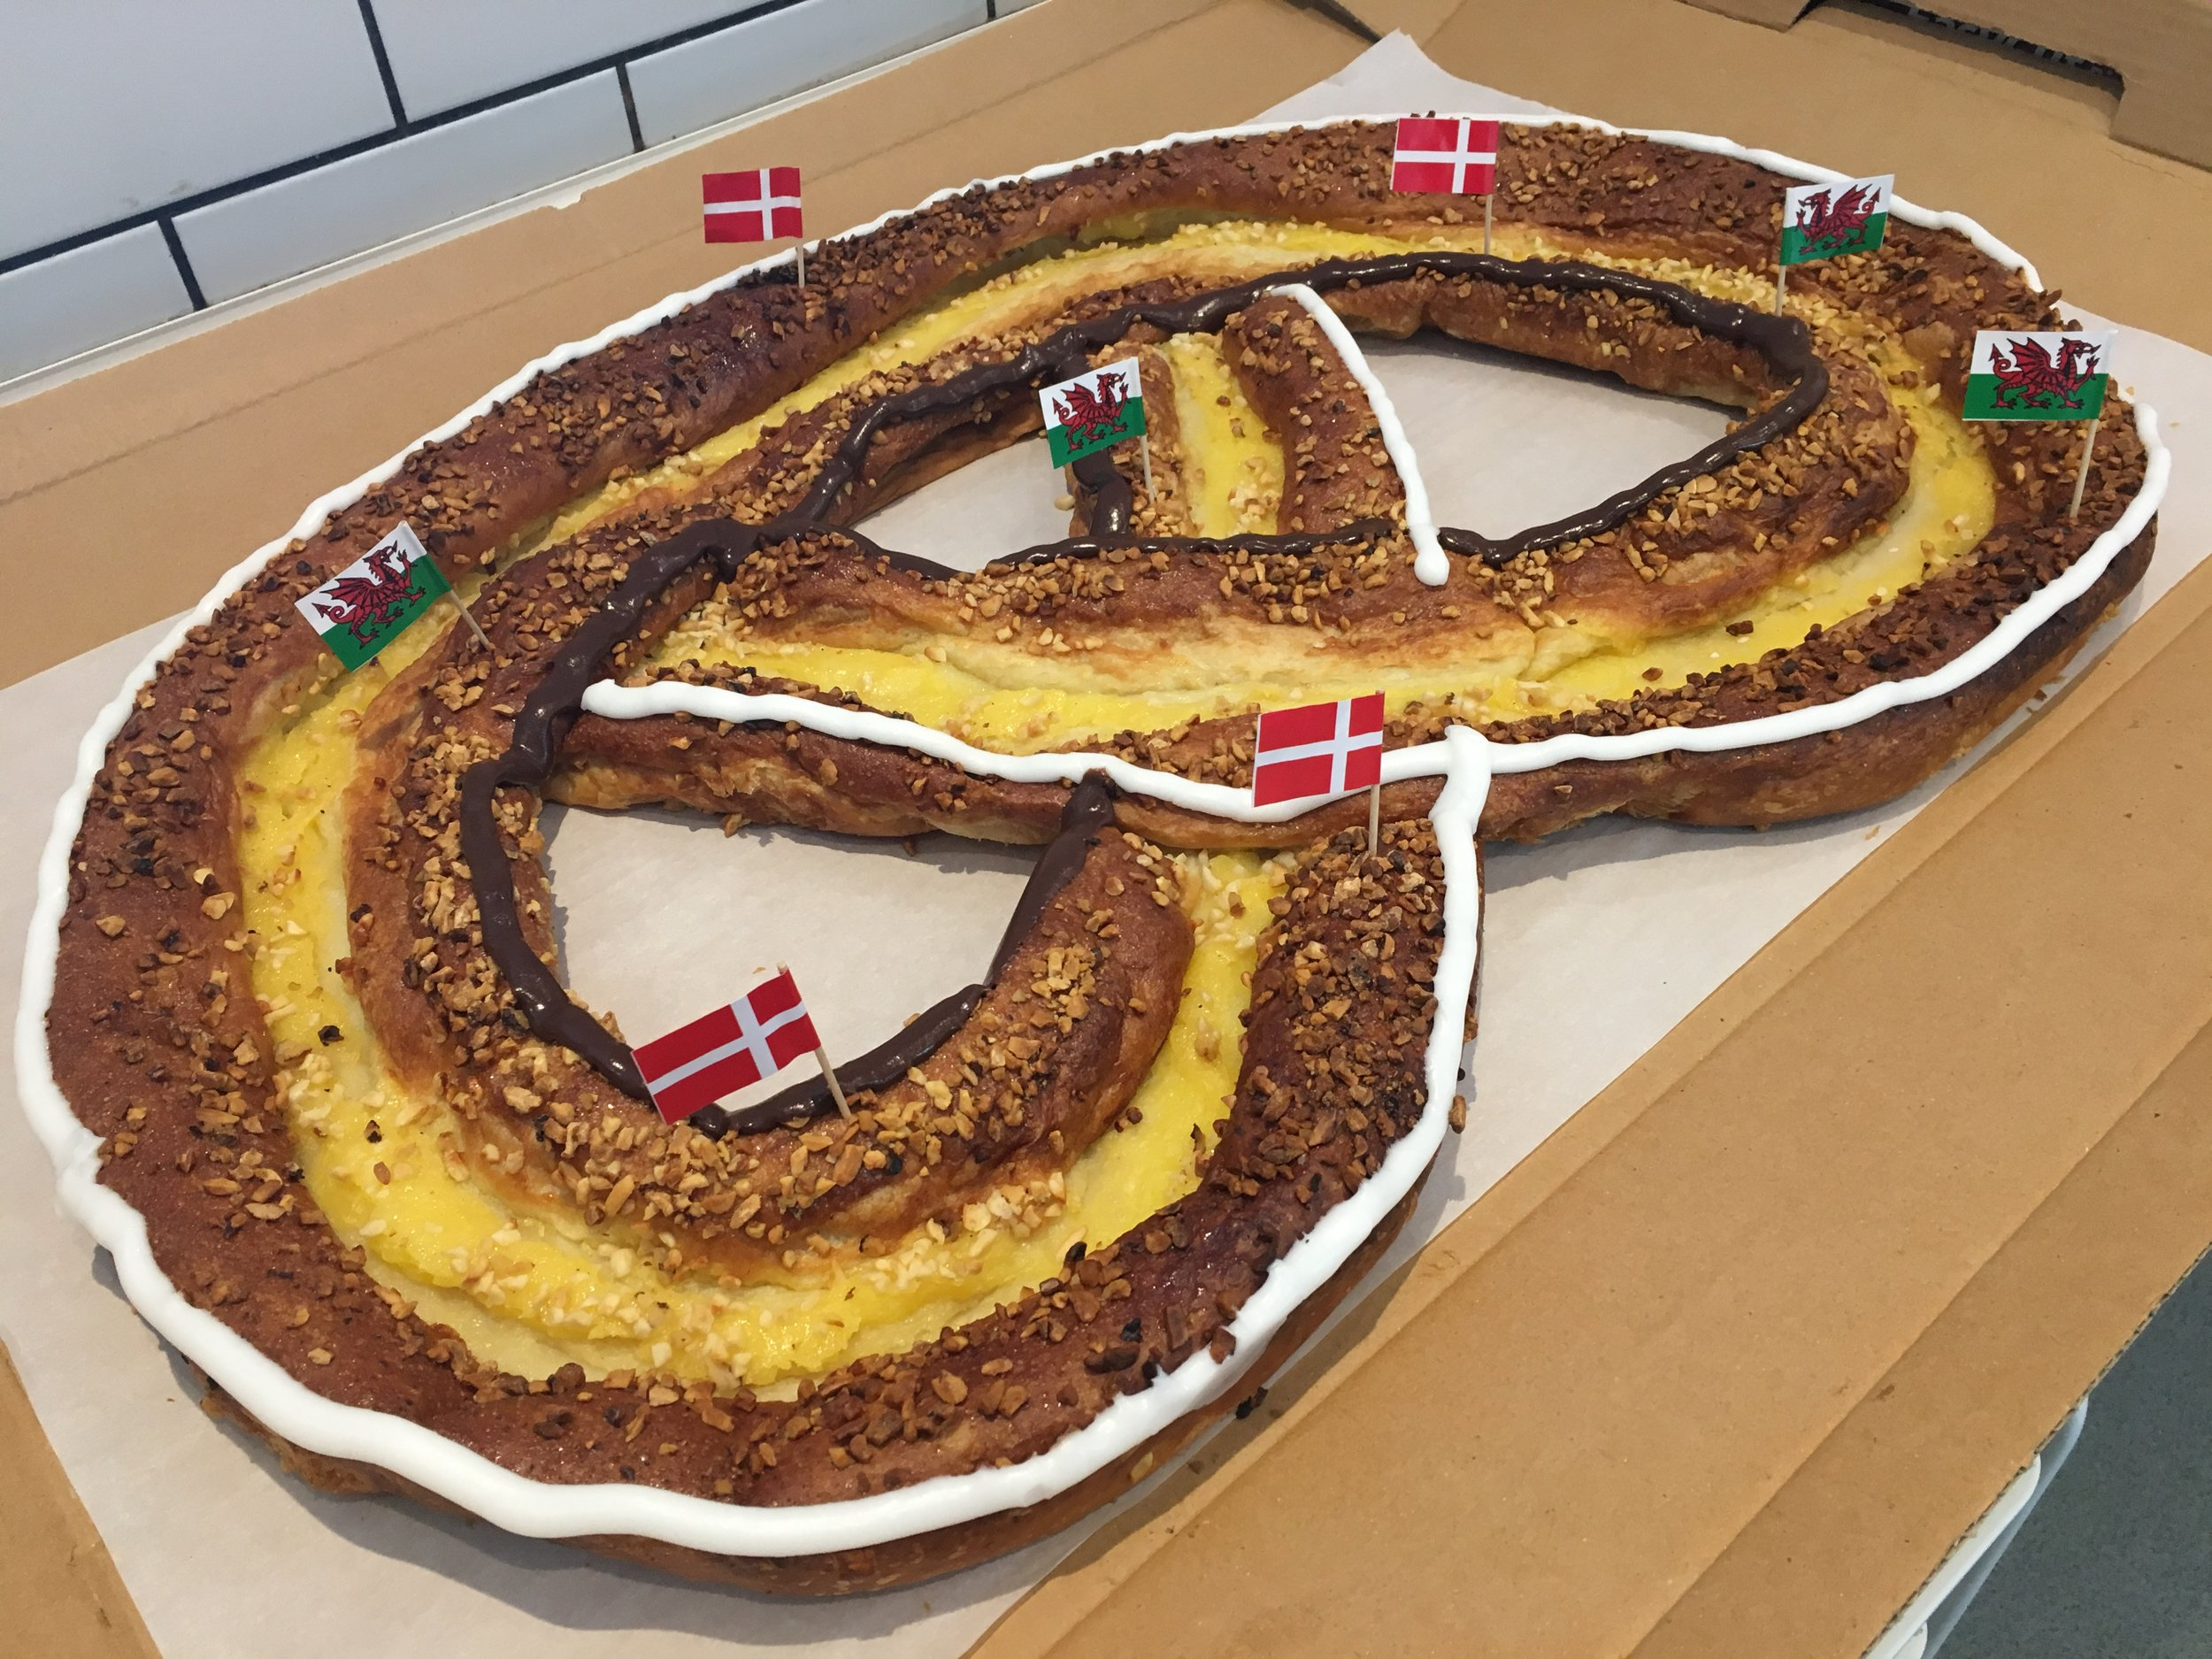 Kringle_thedanishbakery.JPG